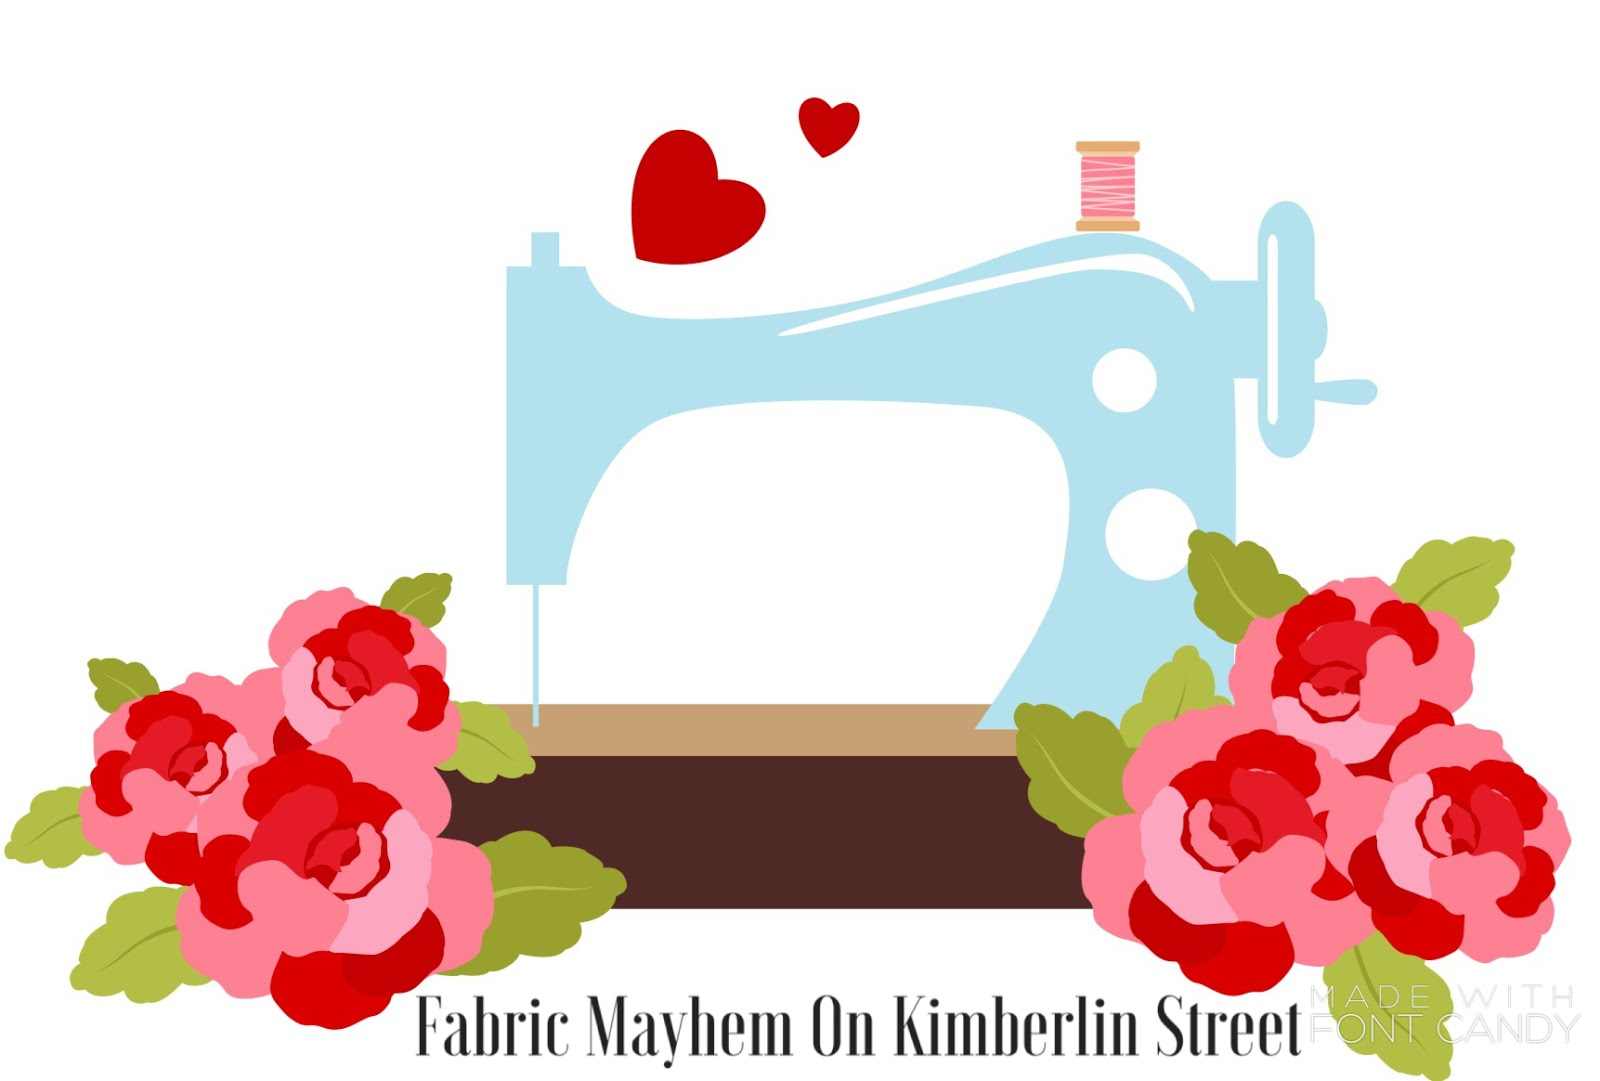 Fabric Mayhem on Kimberlin Street